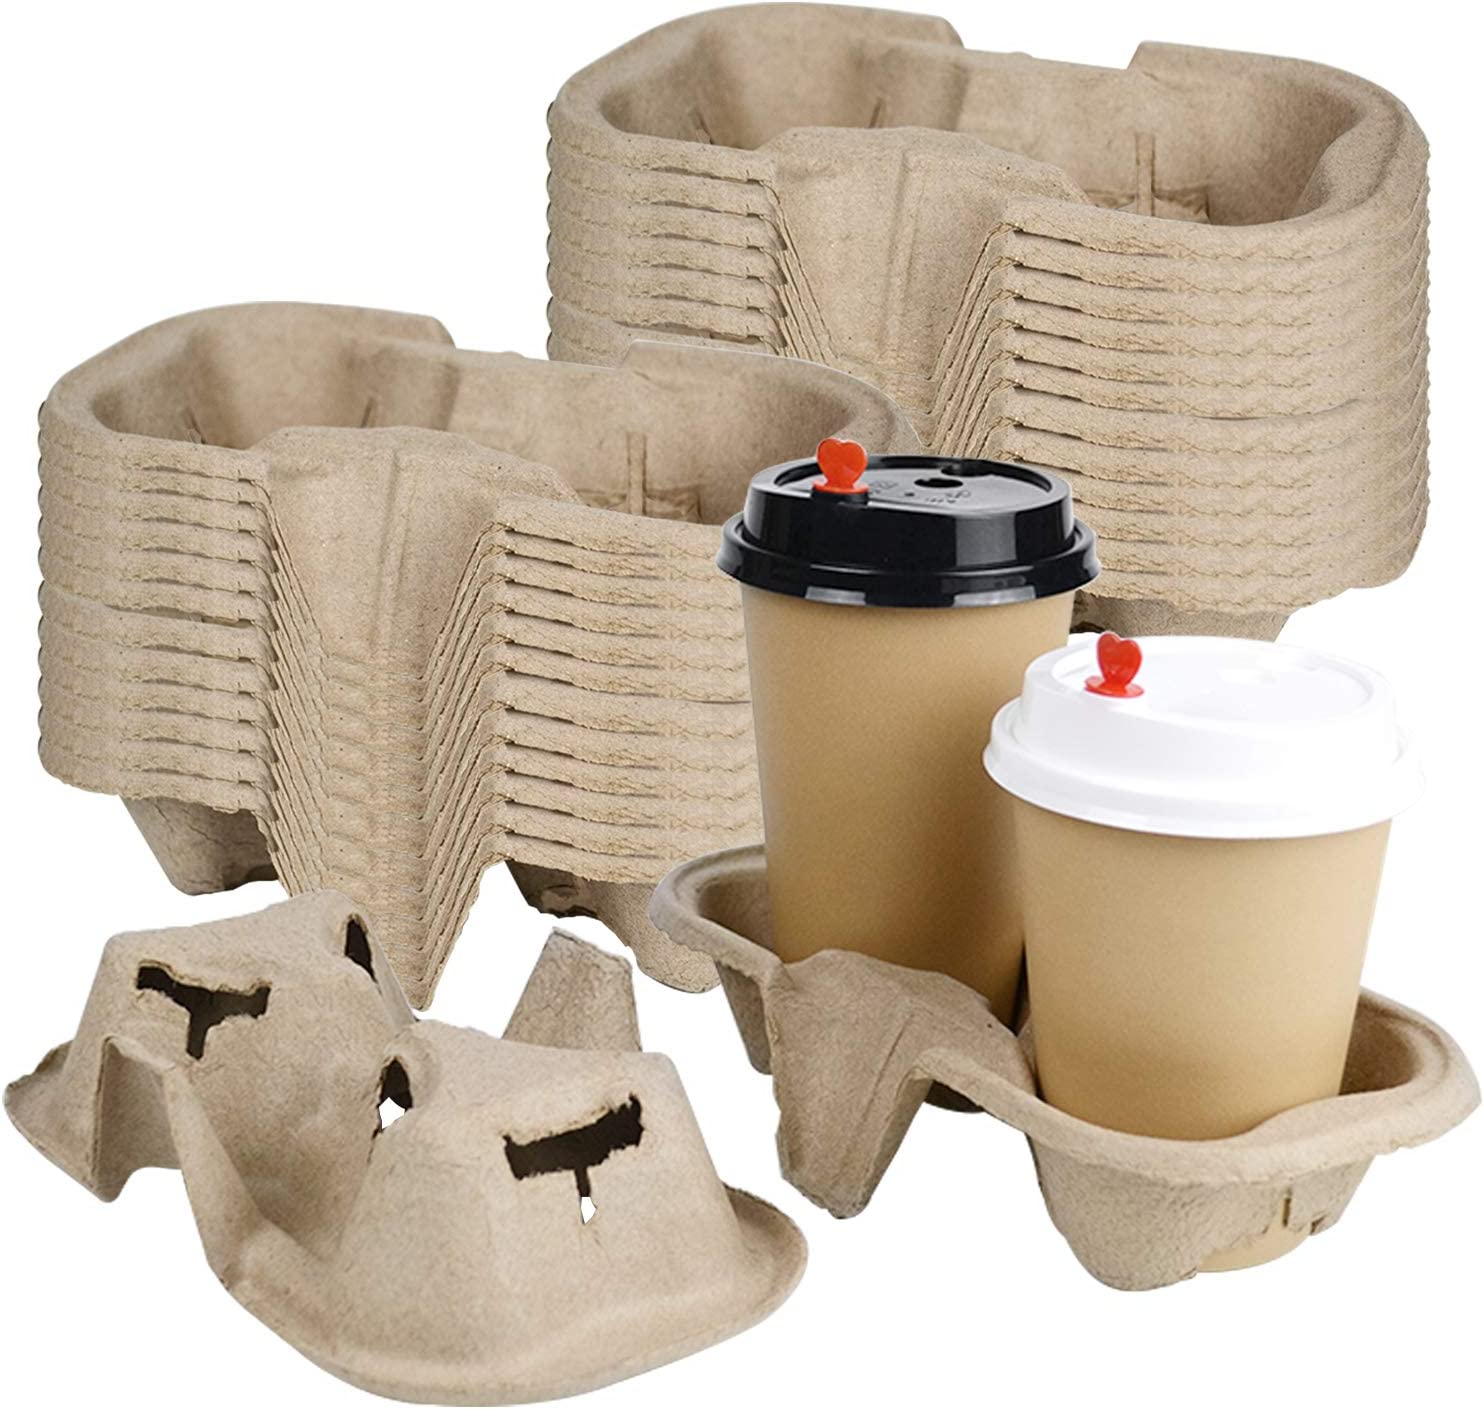 25 Pcs 2 Cups Biodegradable Drink Carriers, Lainrrew Compostable Drink Carry Trays Cup Holders for Hot & Cold Drinks, Durable Molded Coffee Carry Tray for Food Delivery Service